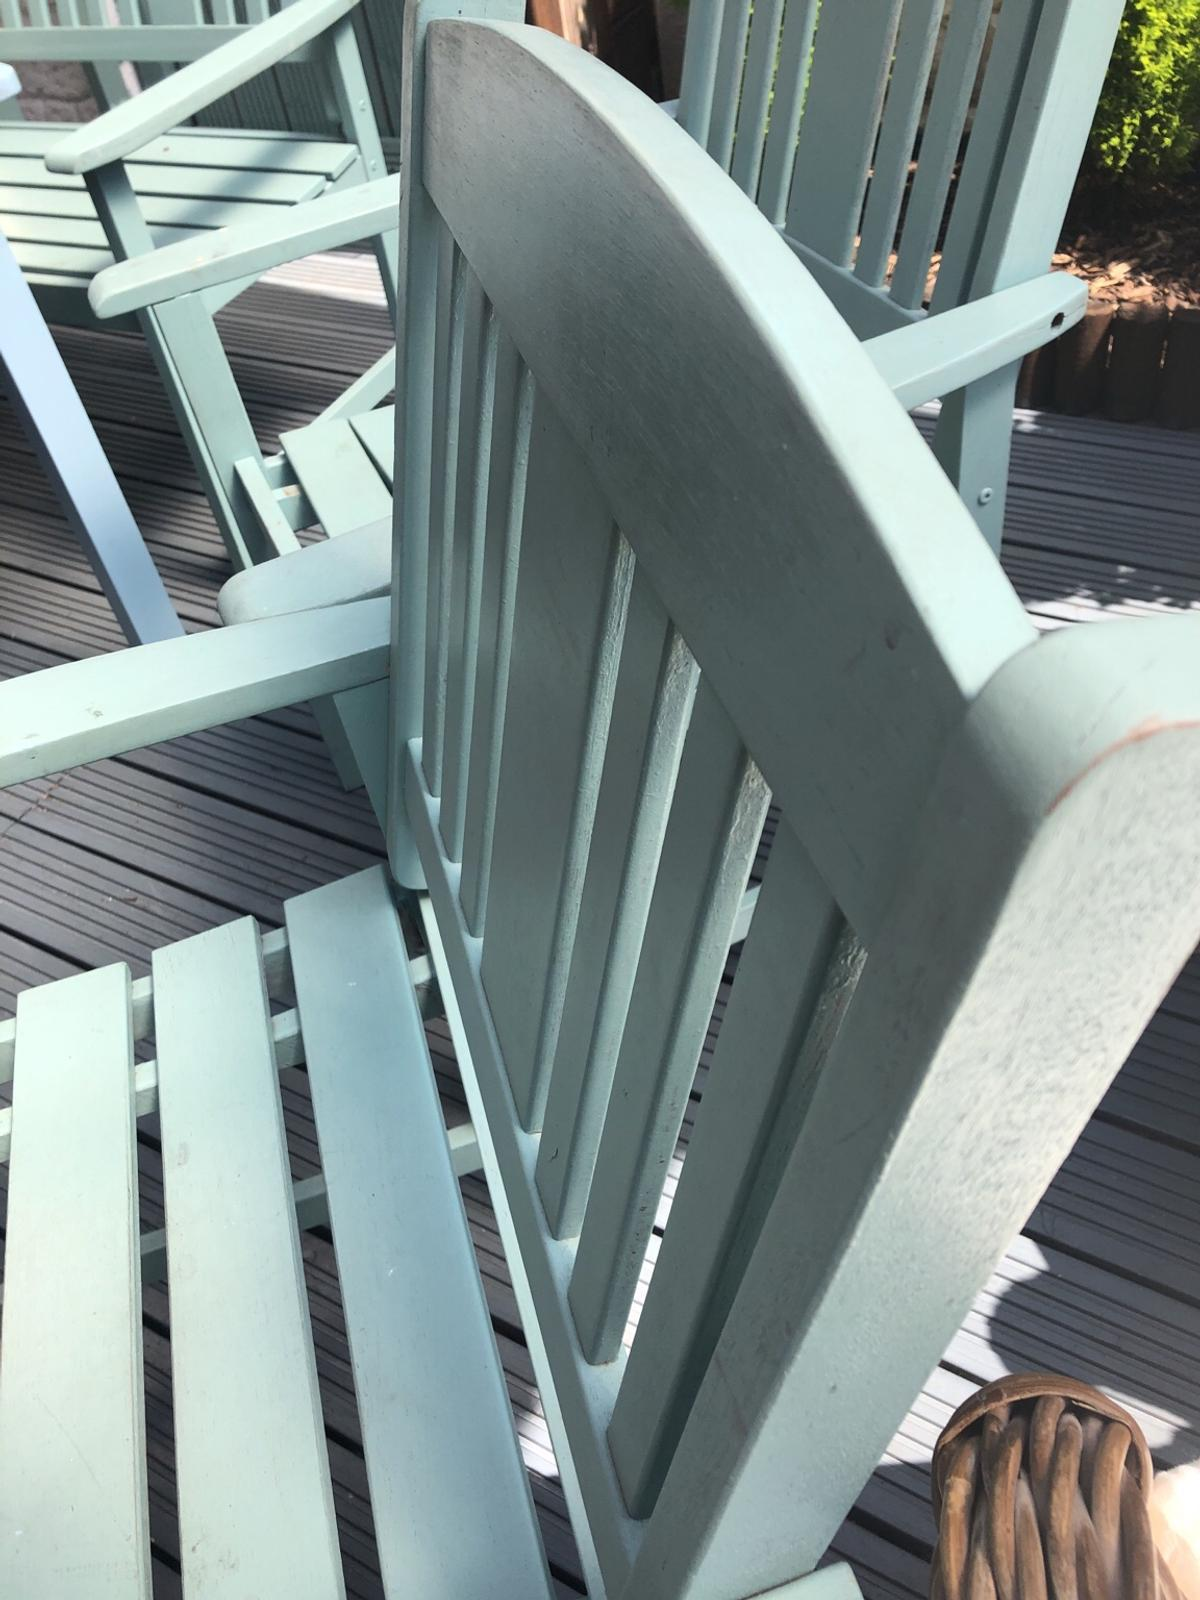 Sensational Garden Chairs In Coventry For 30 00 For Sale Shpock Theyellowbook Wood Chair Design Ideas Theyellowbookinfo